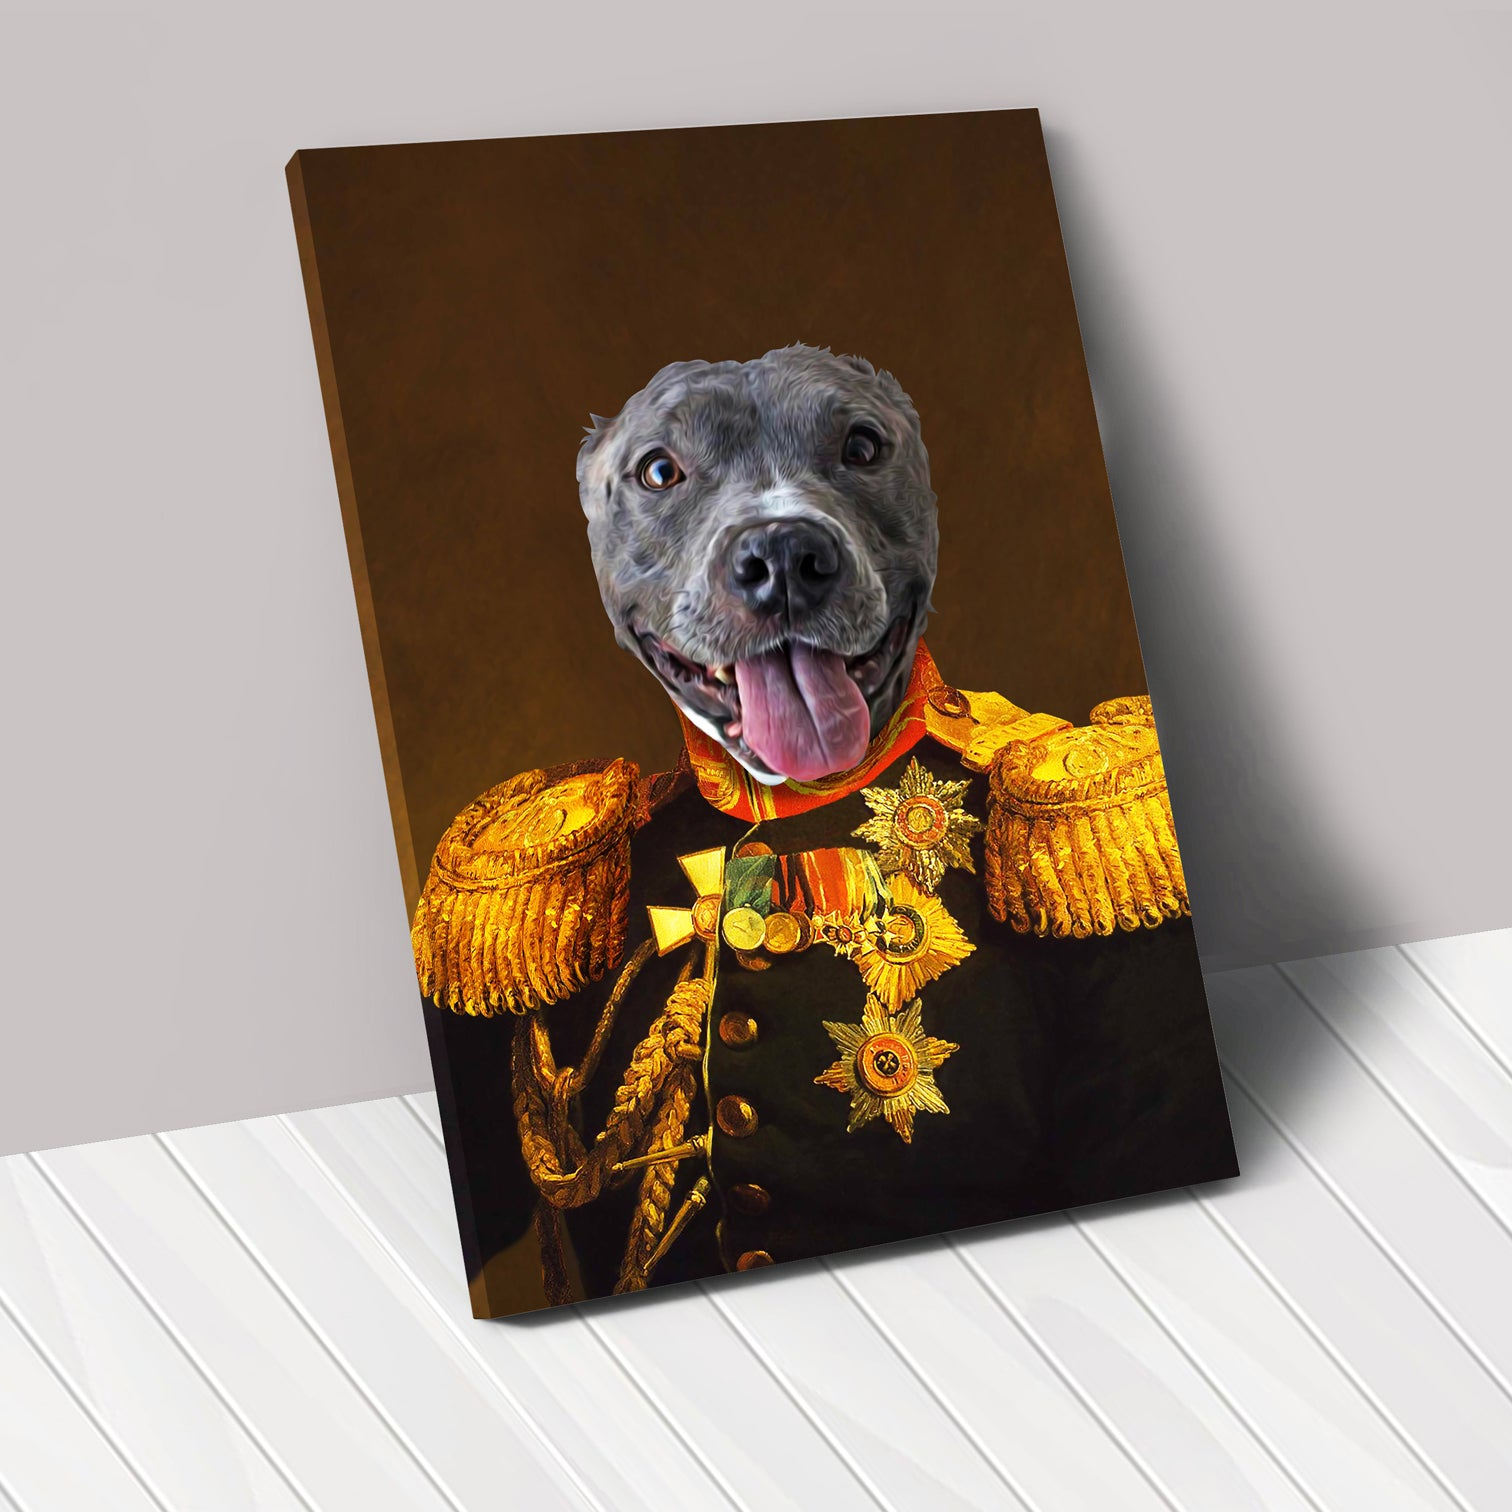 THE VETERAN - Renaissance Pet Portrait